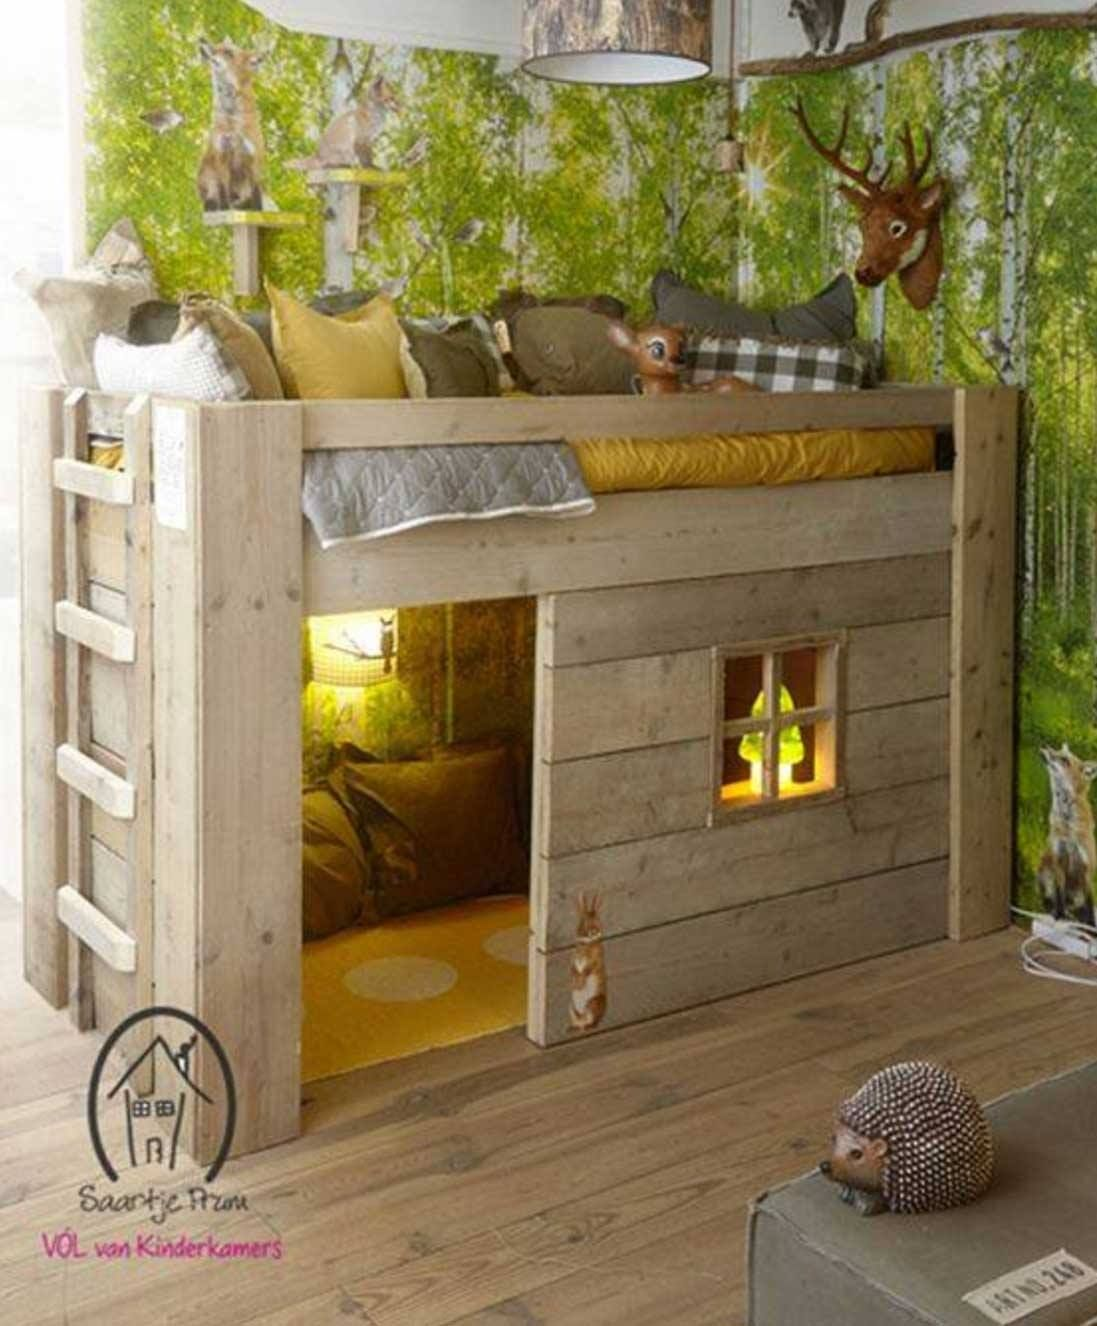 Loft bed ideas for boys  The Best Bunk Bed Ideas Over  Ideas  Bunk bed Lofts and Woods